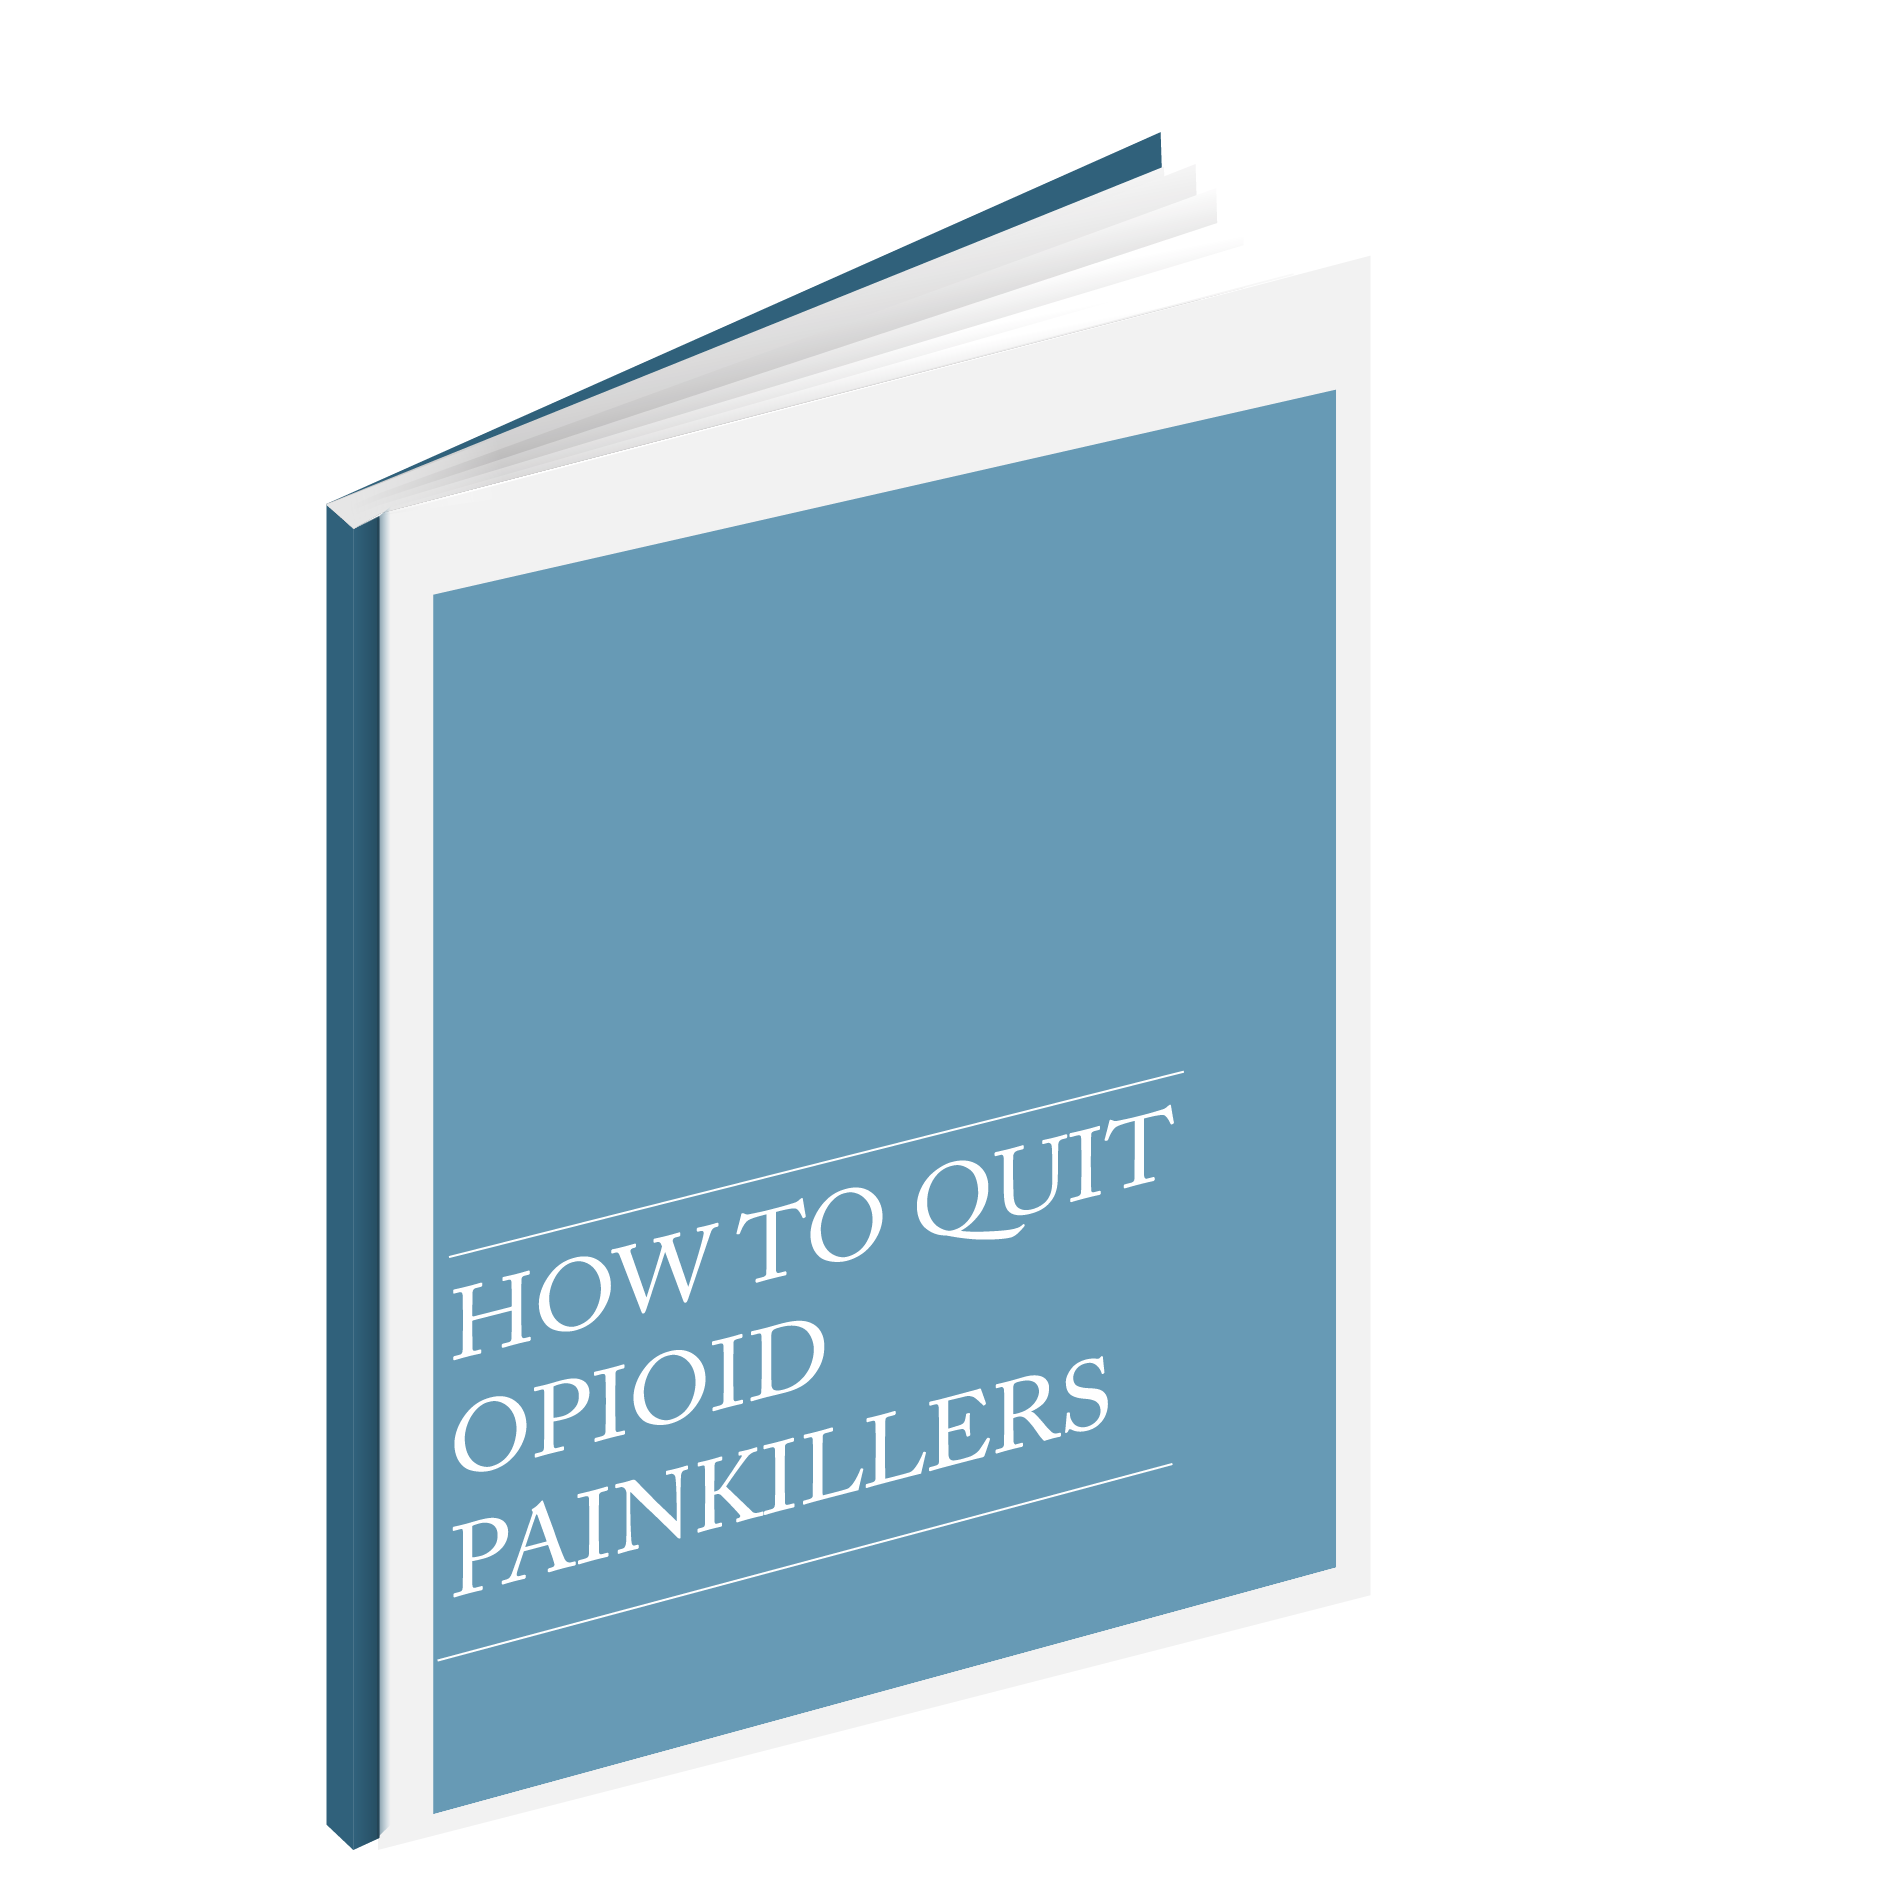 The Definitive Guide To Quitting  Painkillers (PRINTABLE BOOK)